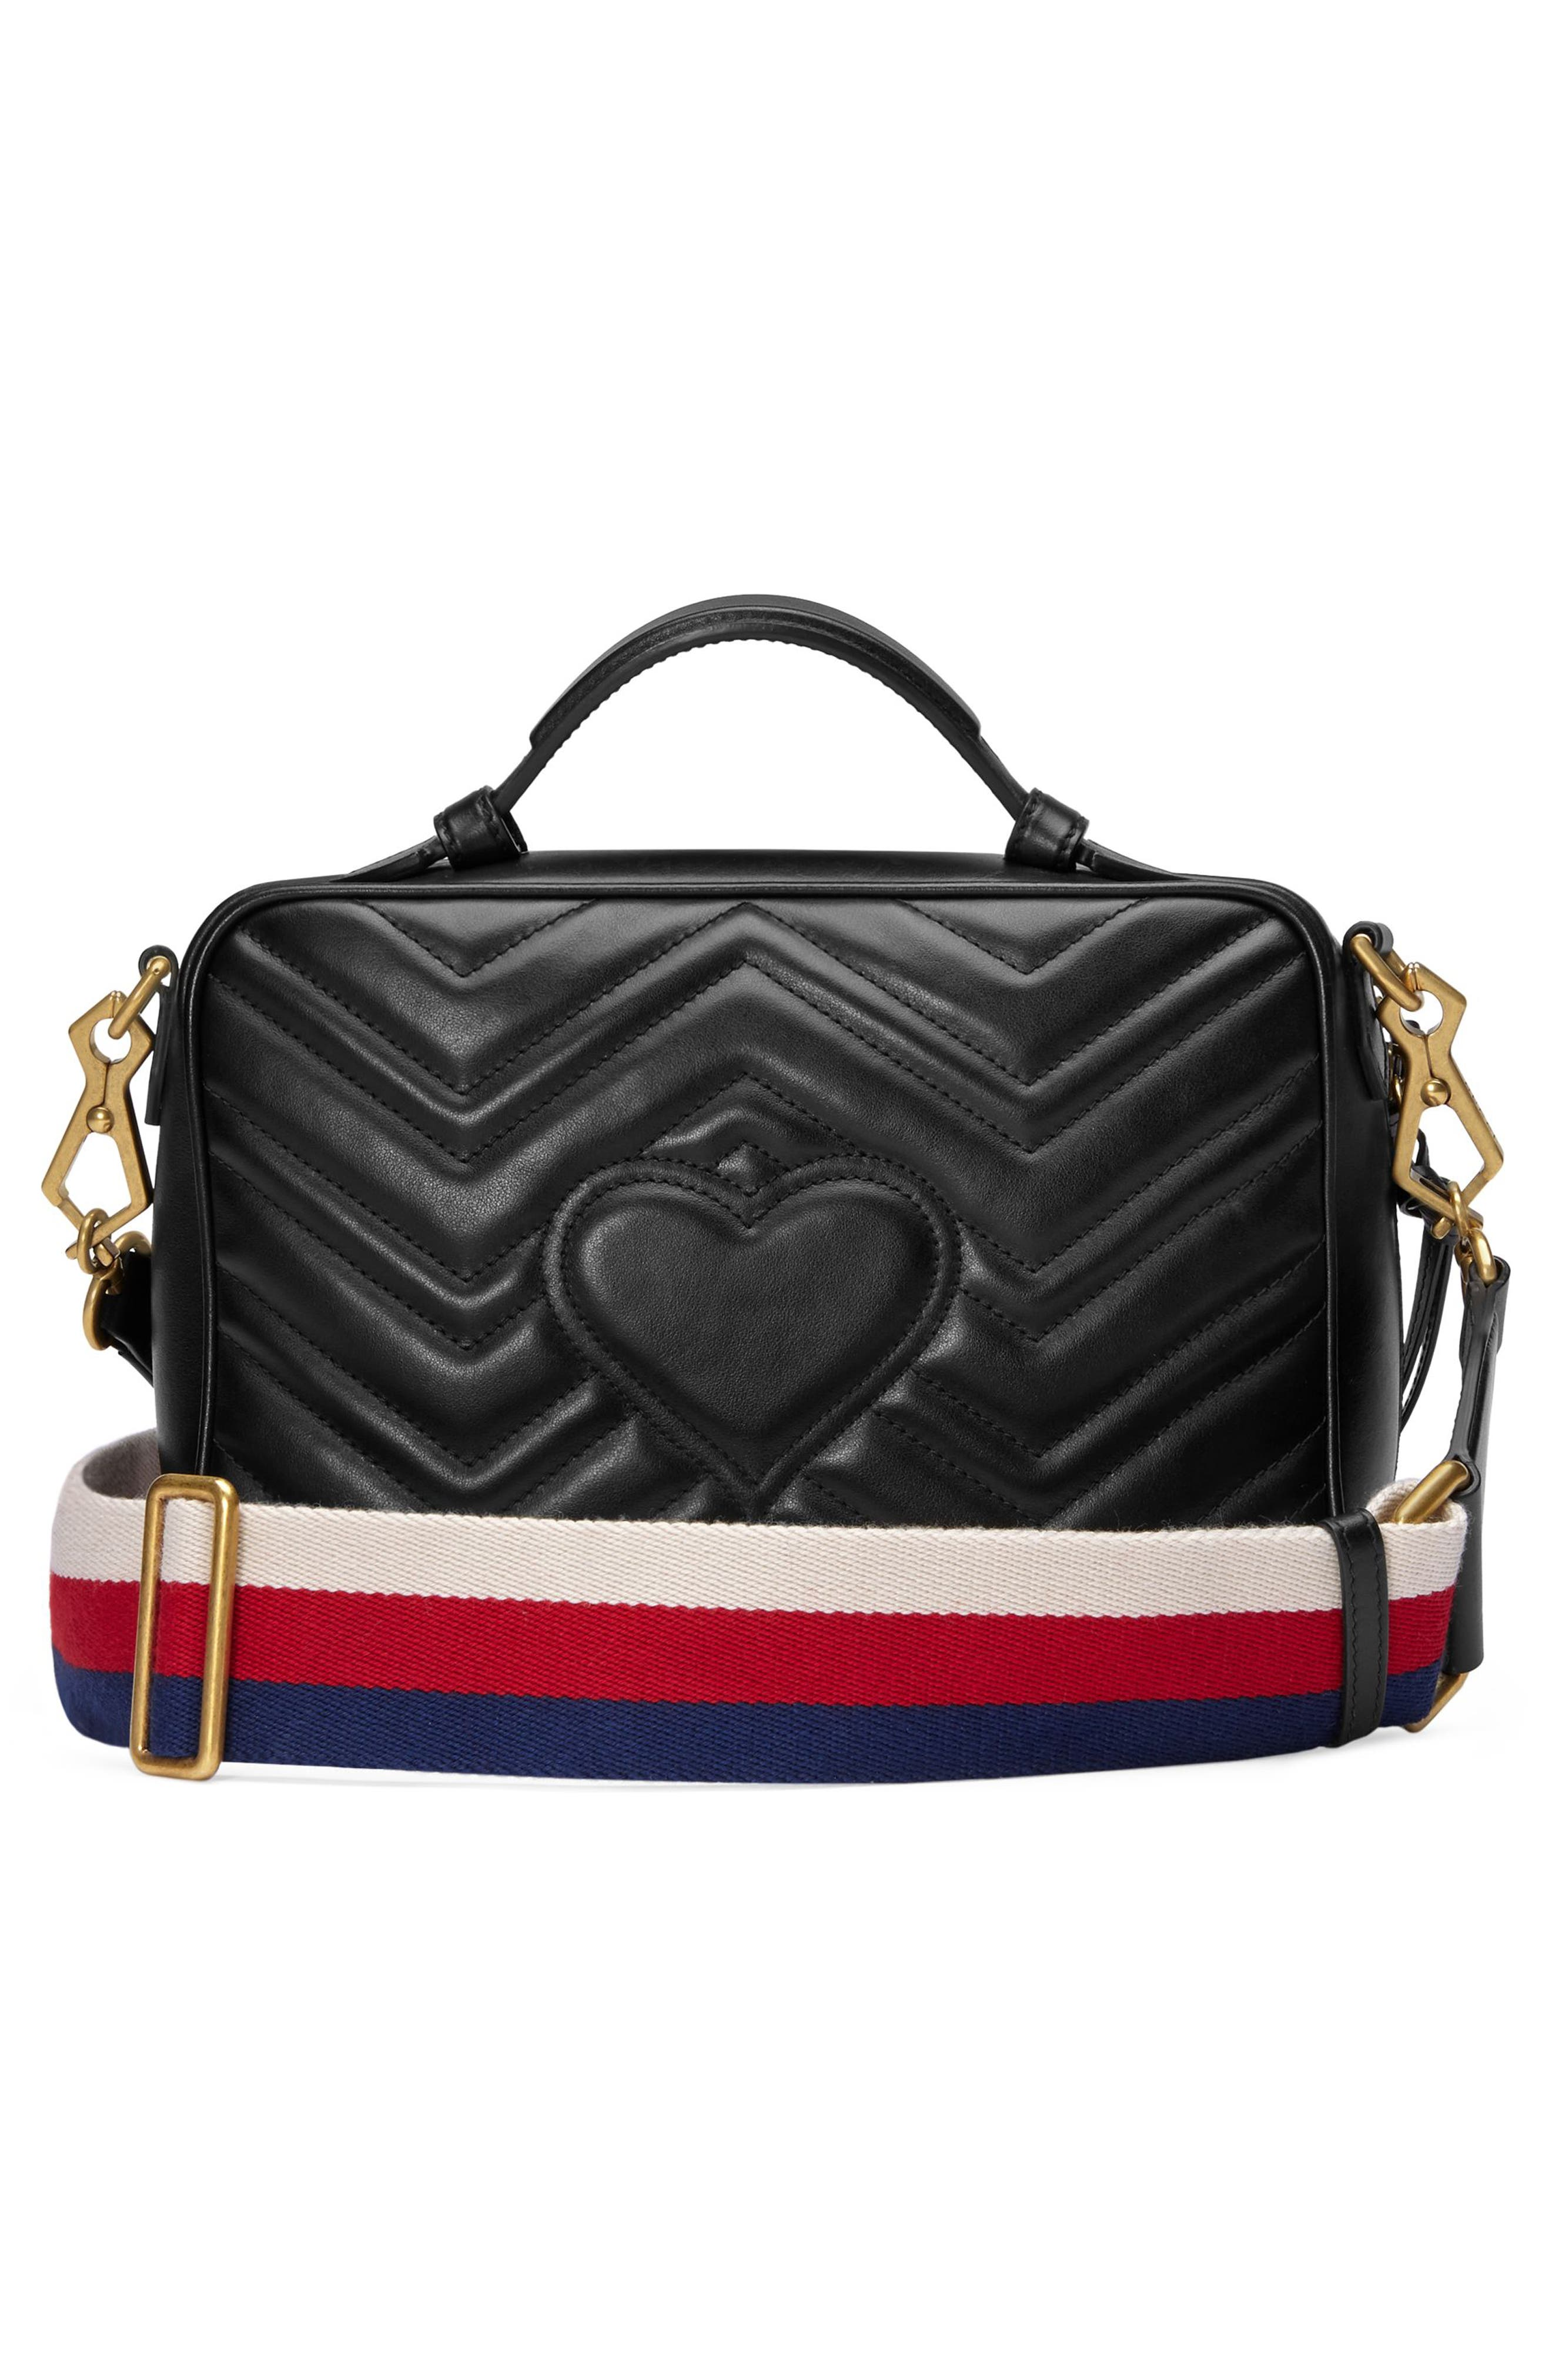 GUCCI, Small GG Marmont 2.0 Matelassé Leather Camera Bag with Webbed Strap, Alternate thumbnail 2, color, NERO/ WHITE/ HIBISCUS RED